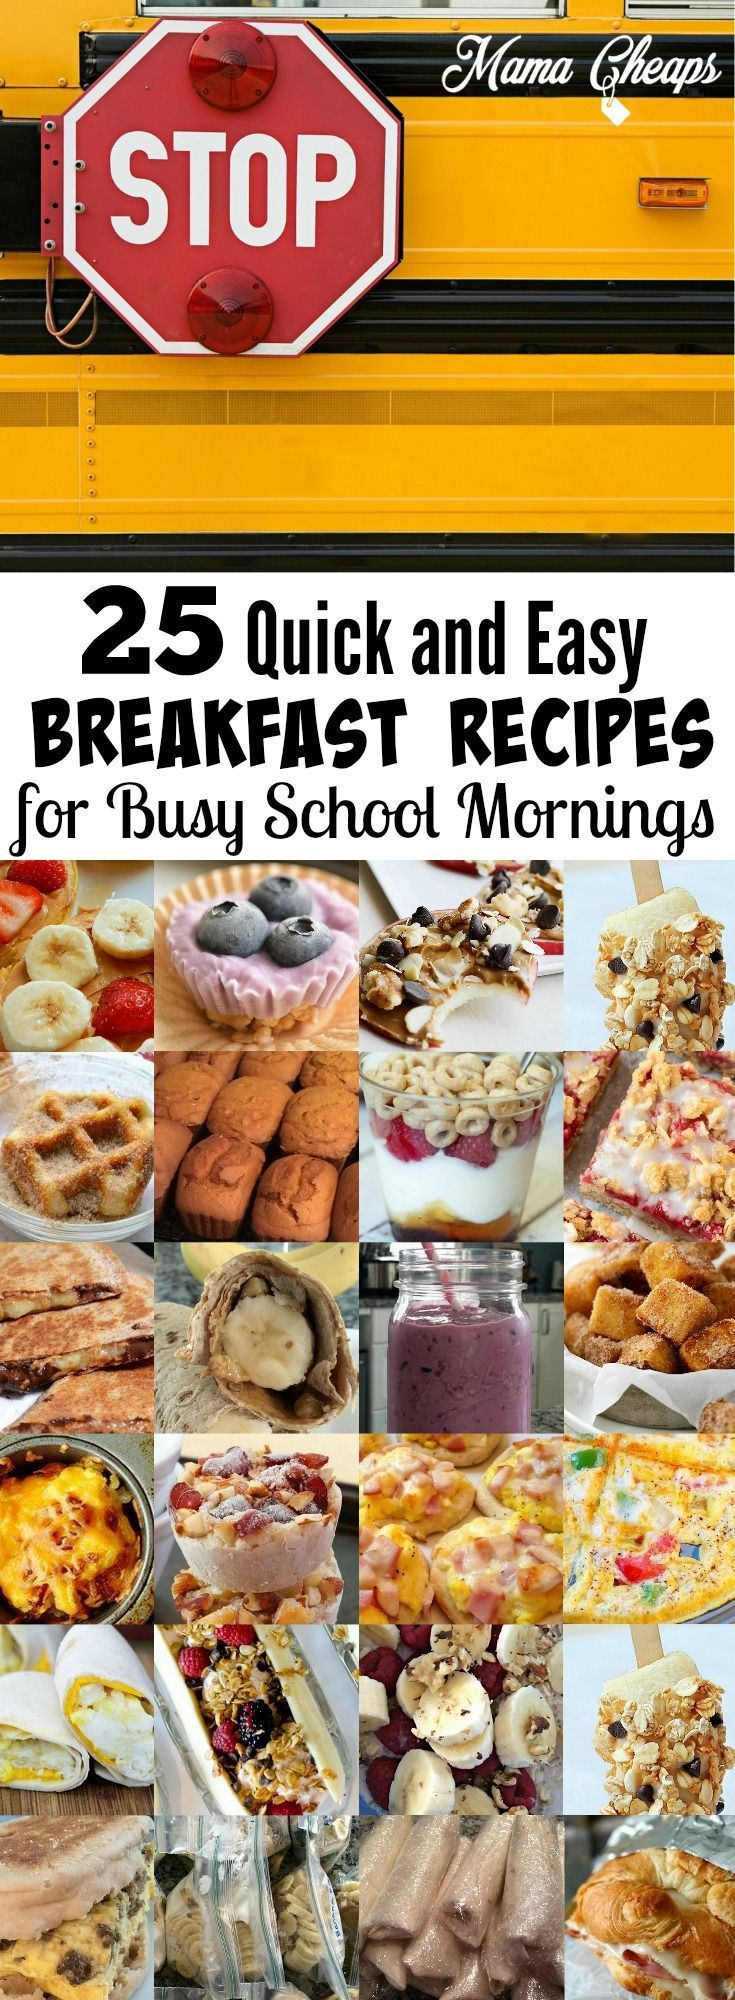 25 Quick and Easy Breakfast Recipe Ideas for Busy School Mornings Find more great recipes and back to school tips on MamaCheaps.com!